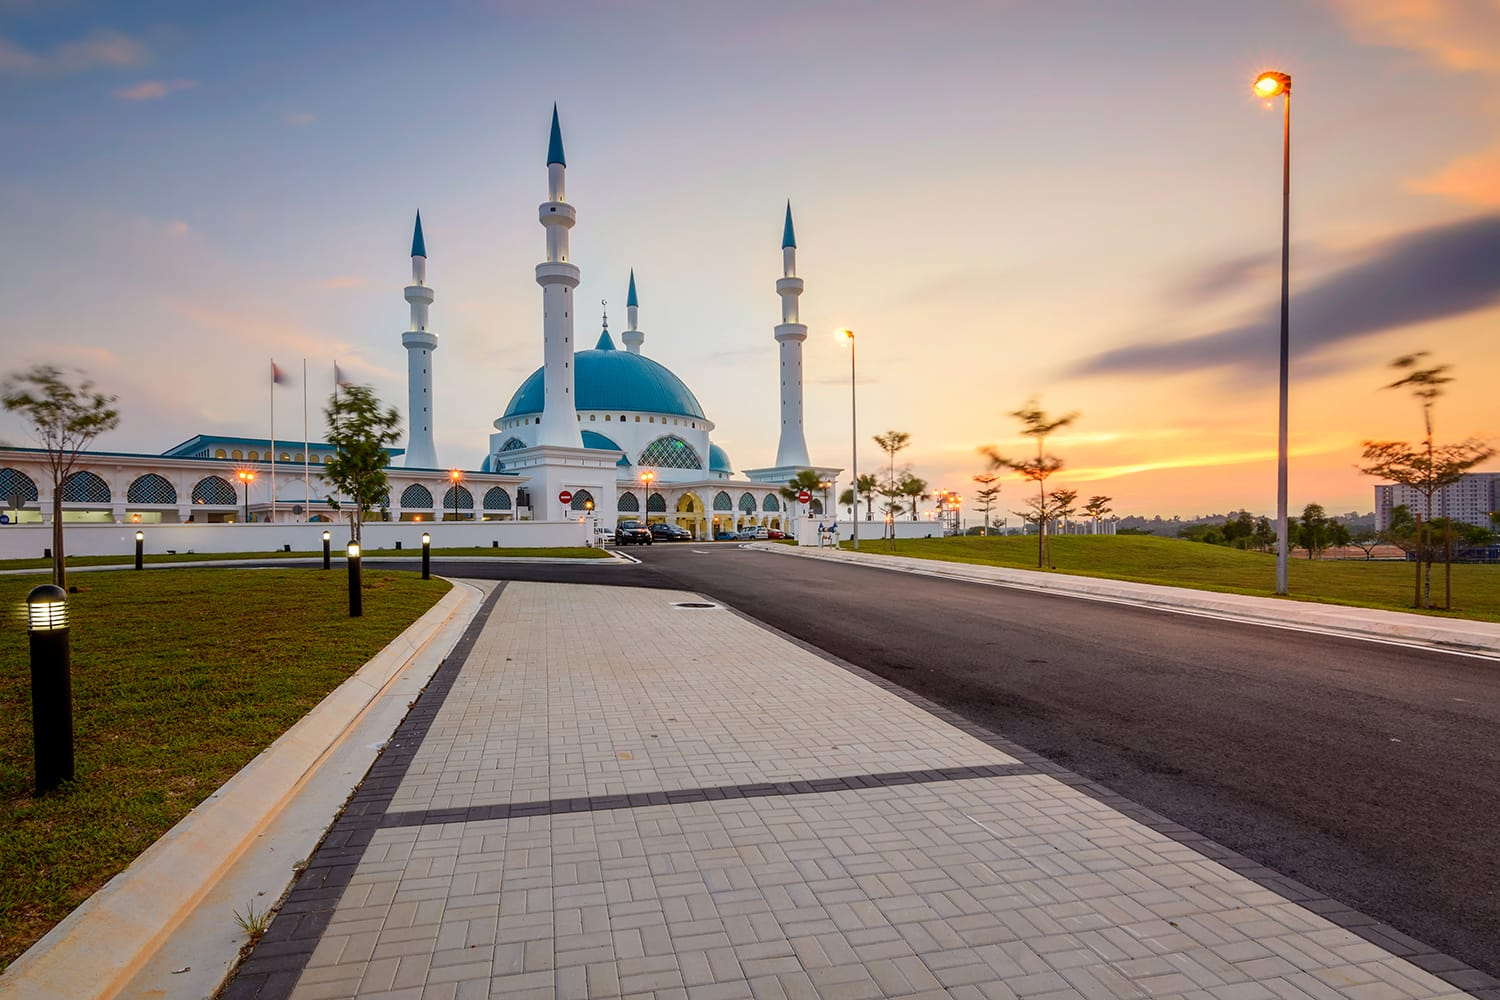 Bandar Dato Onn Mosque Building during sunset in Johor Bahru, Malaysia